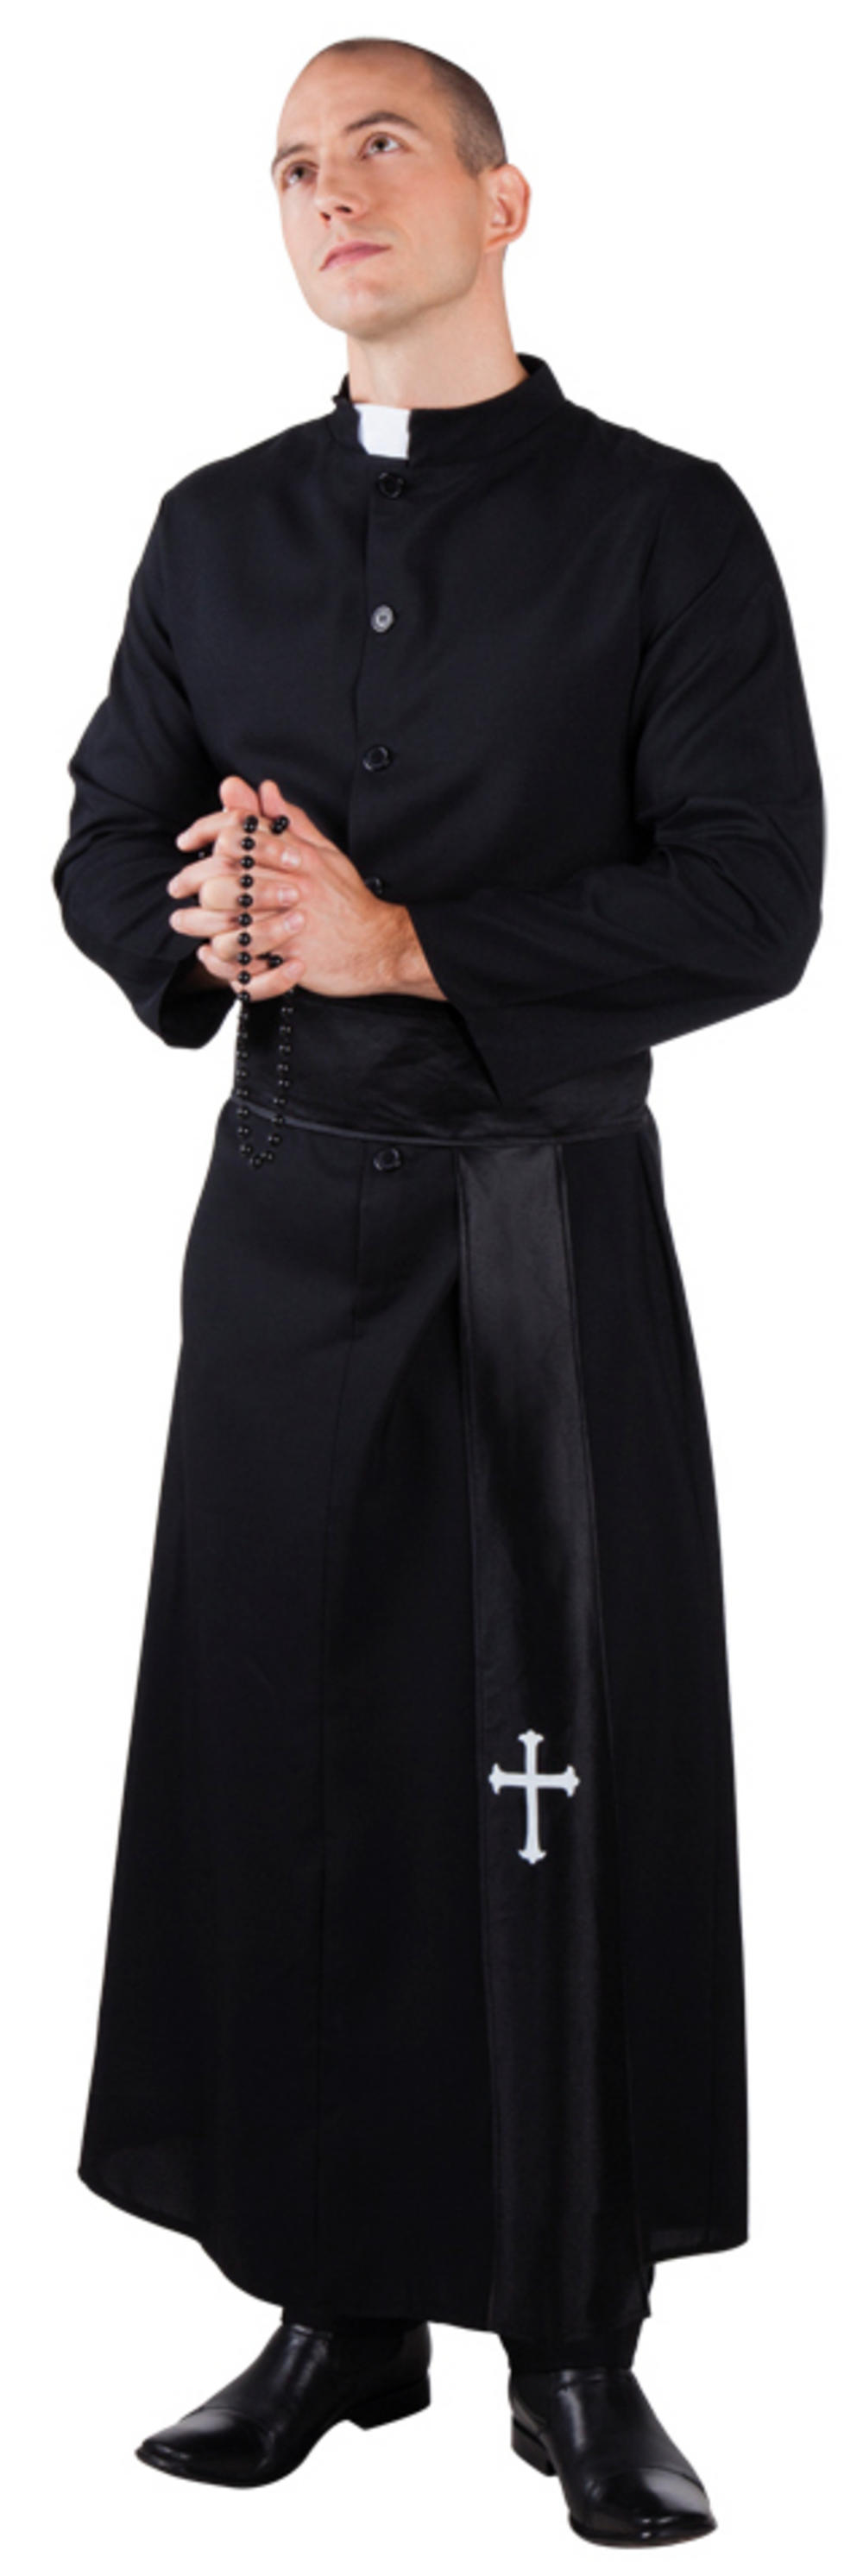 Holy Priest Mens Costume